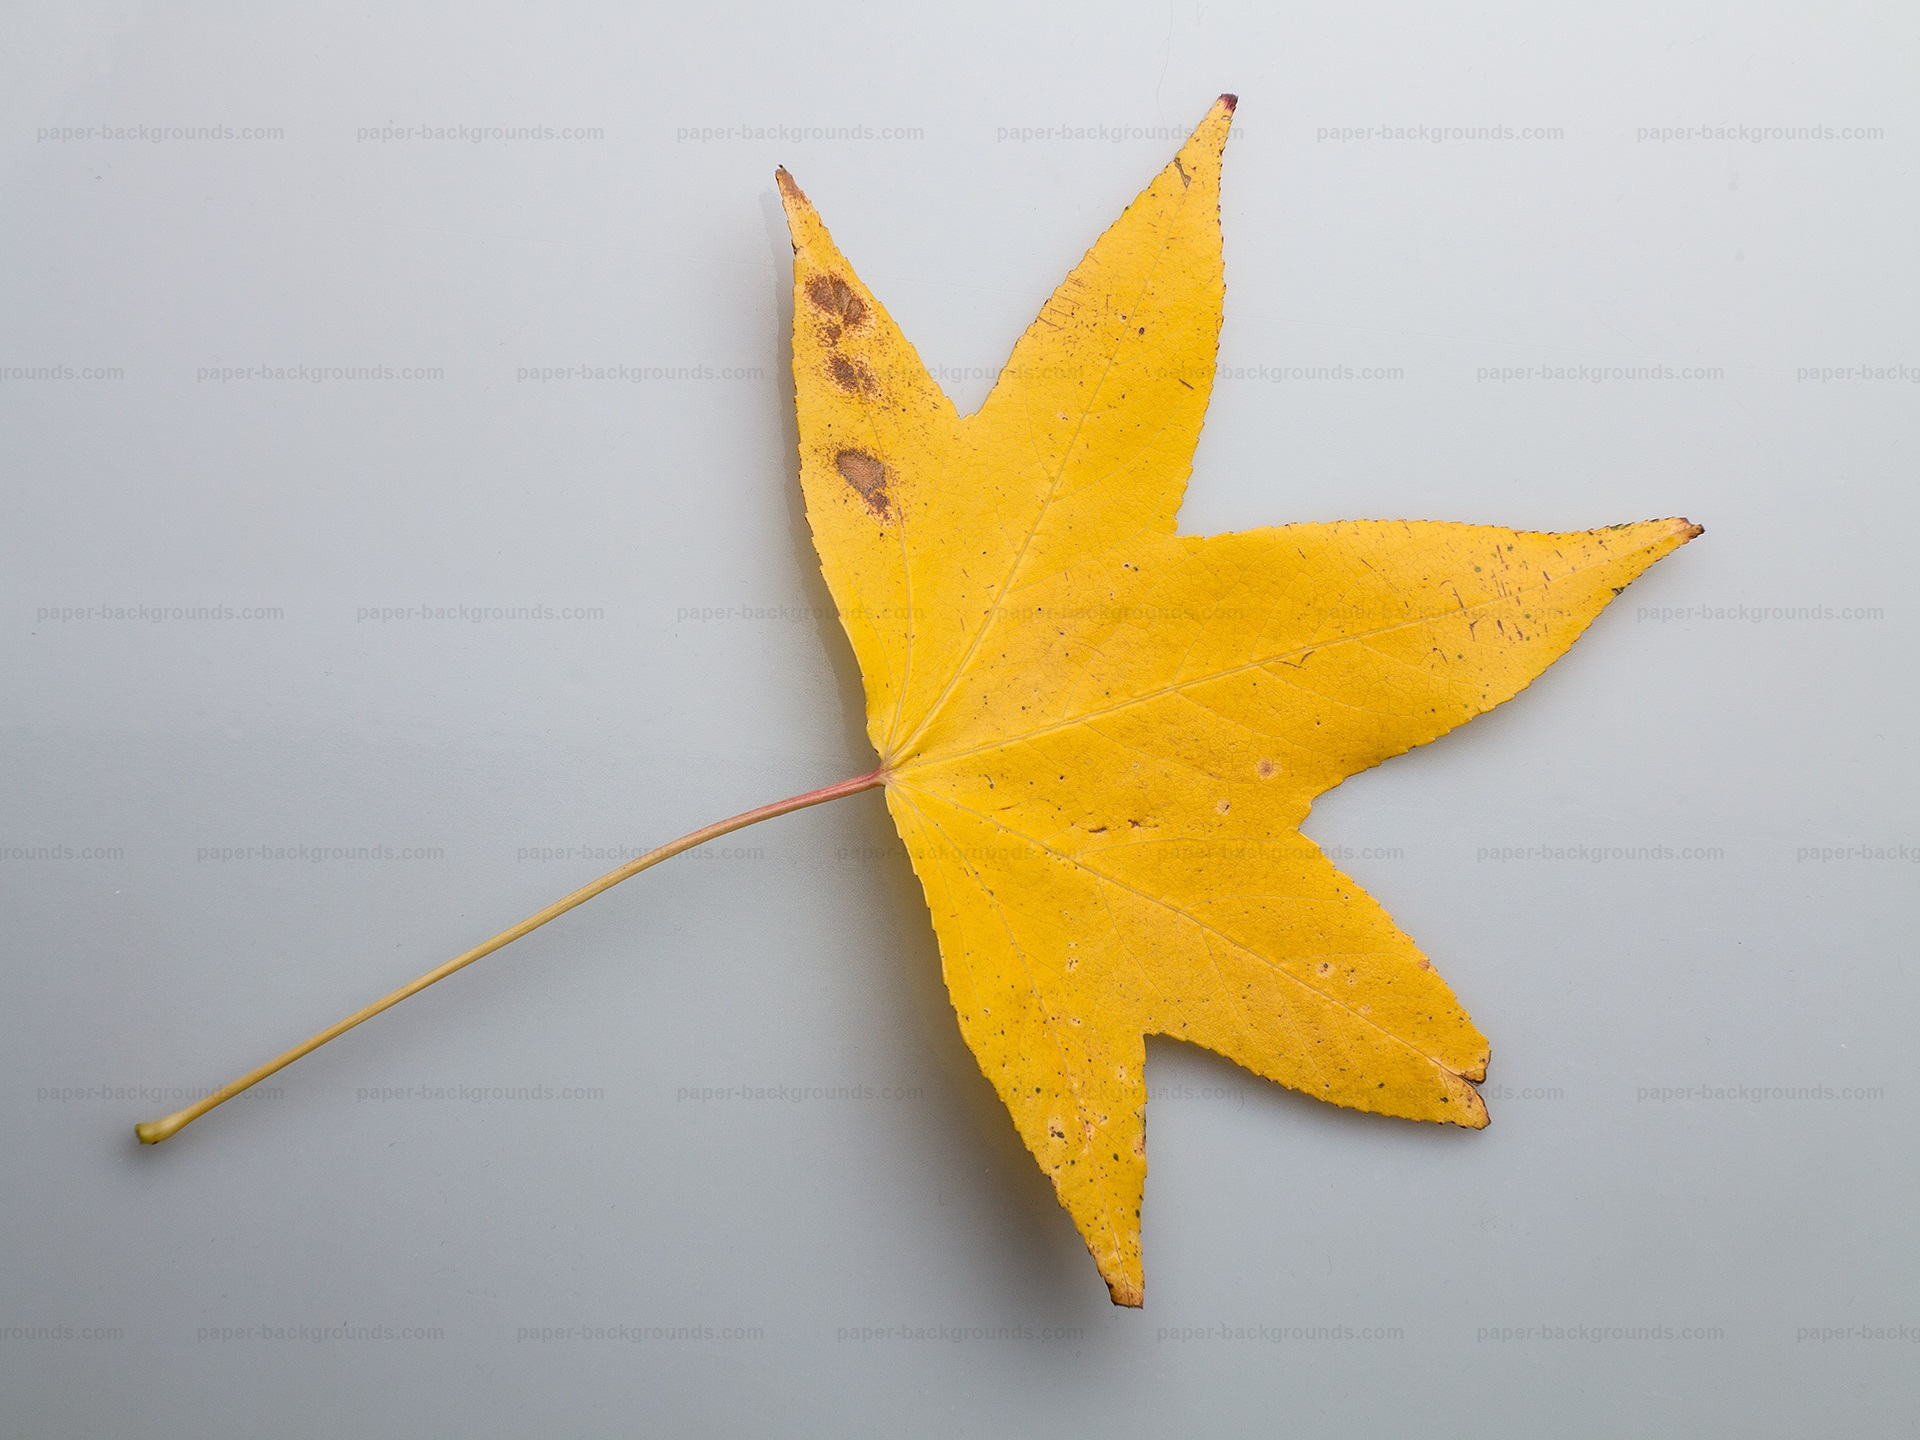 Dry Yellow Leaf Photo on White Background HD